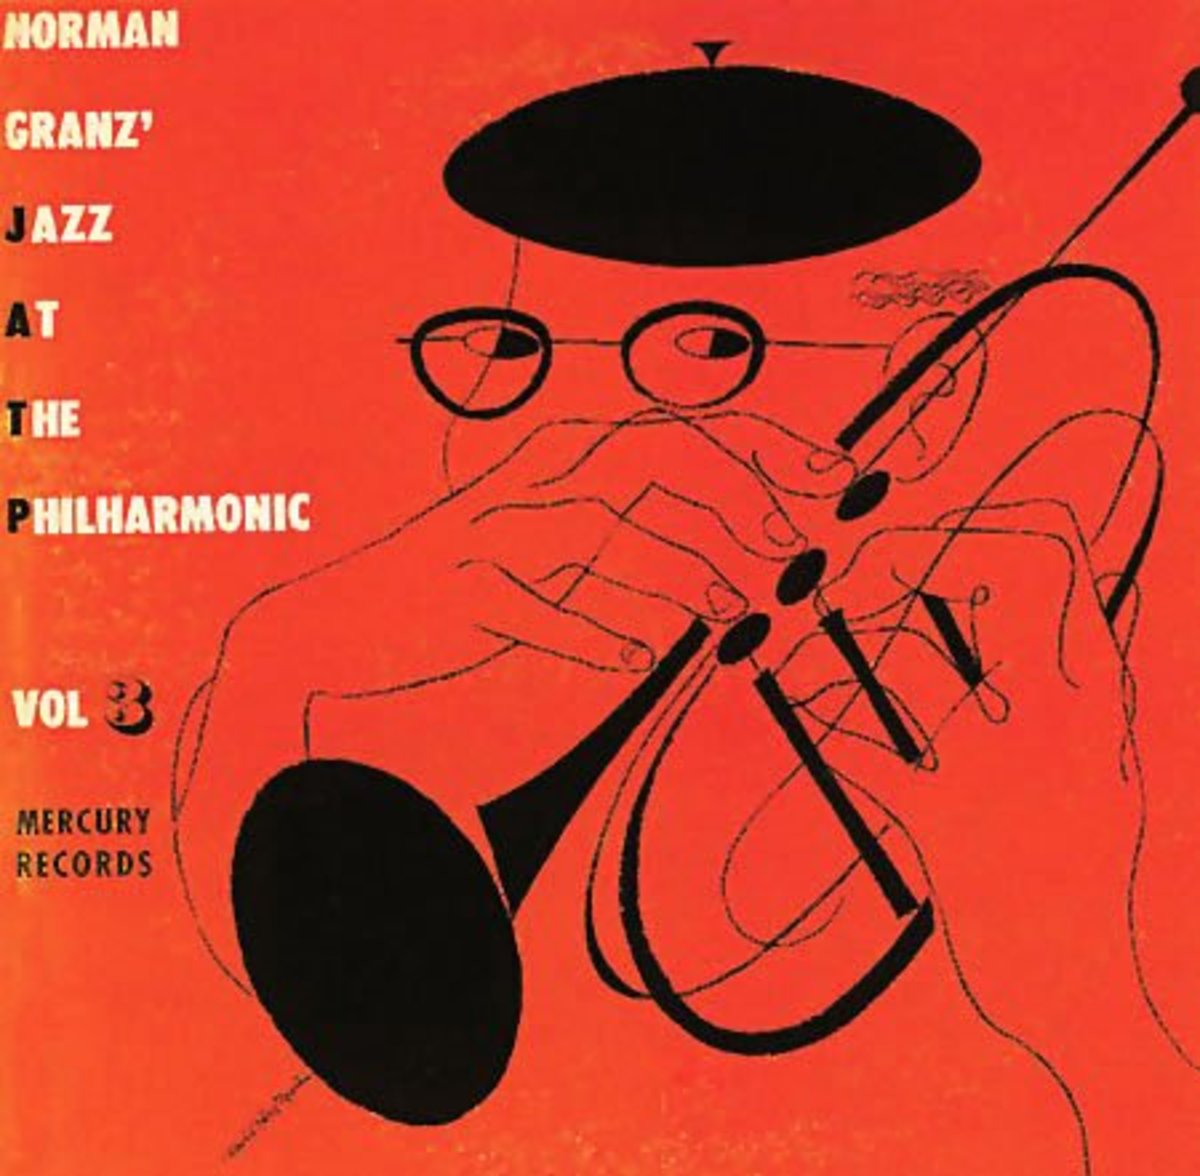 "Jazz at the Philharmonic, vol. 3 Mercury Records MG C 195 10"" LP Vinyl Record (1946) Album Cover Art by David Stone Martin Album Cover Art"